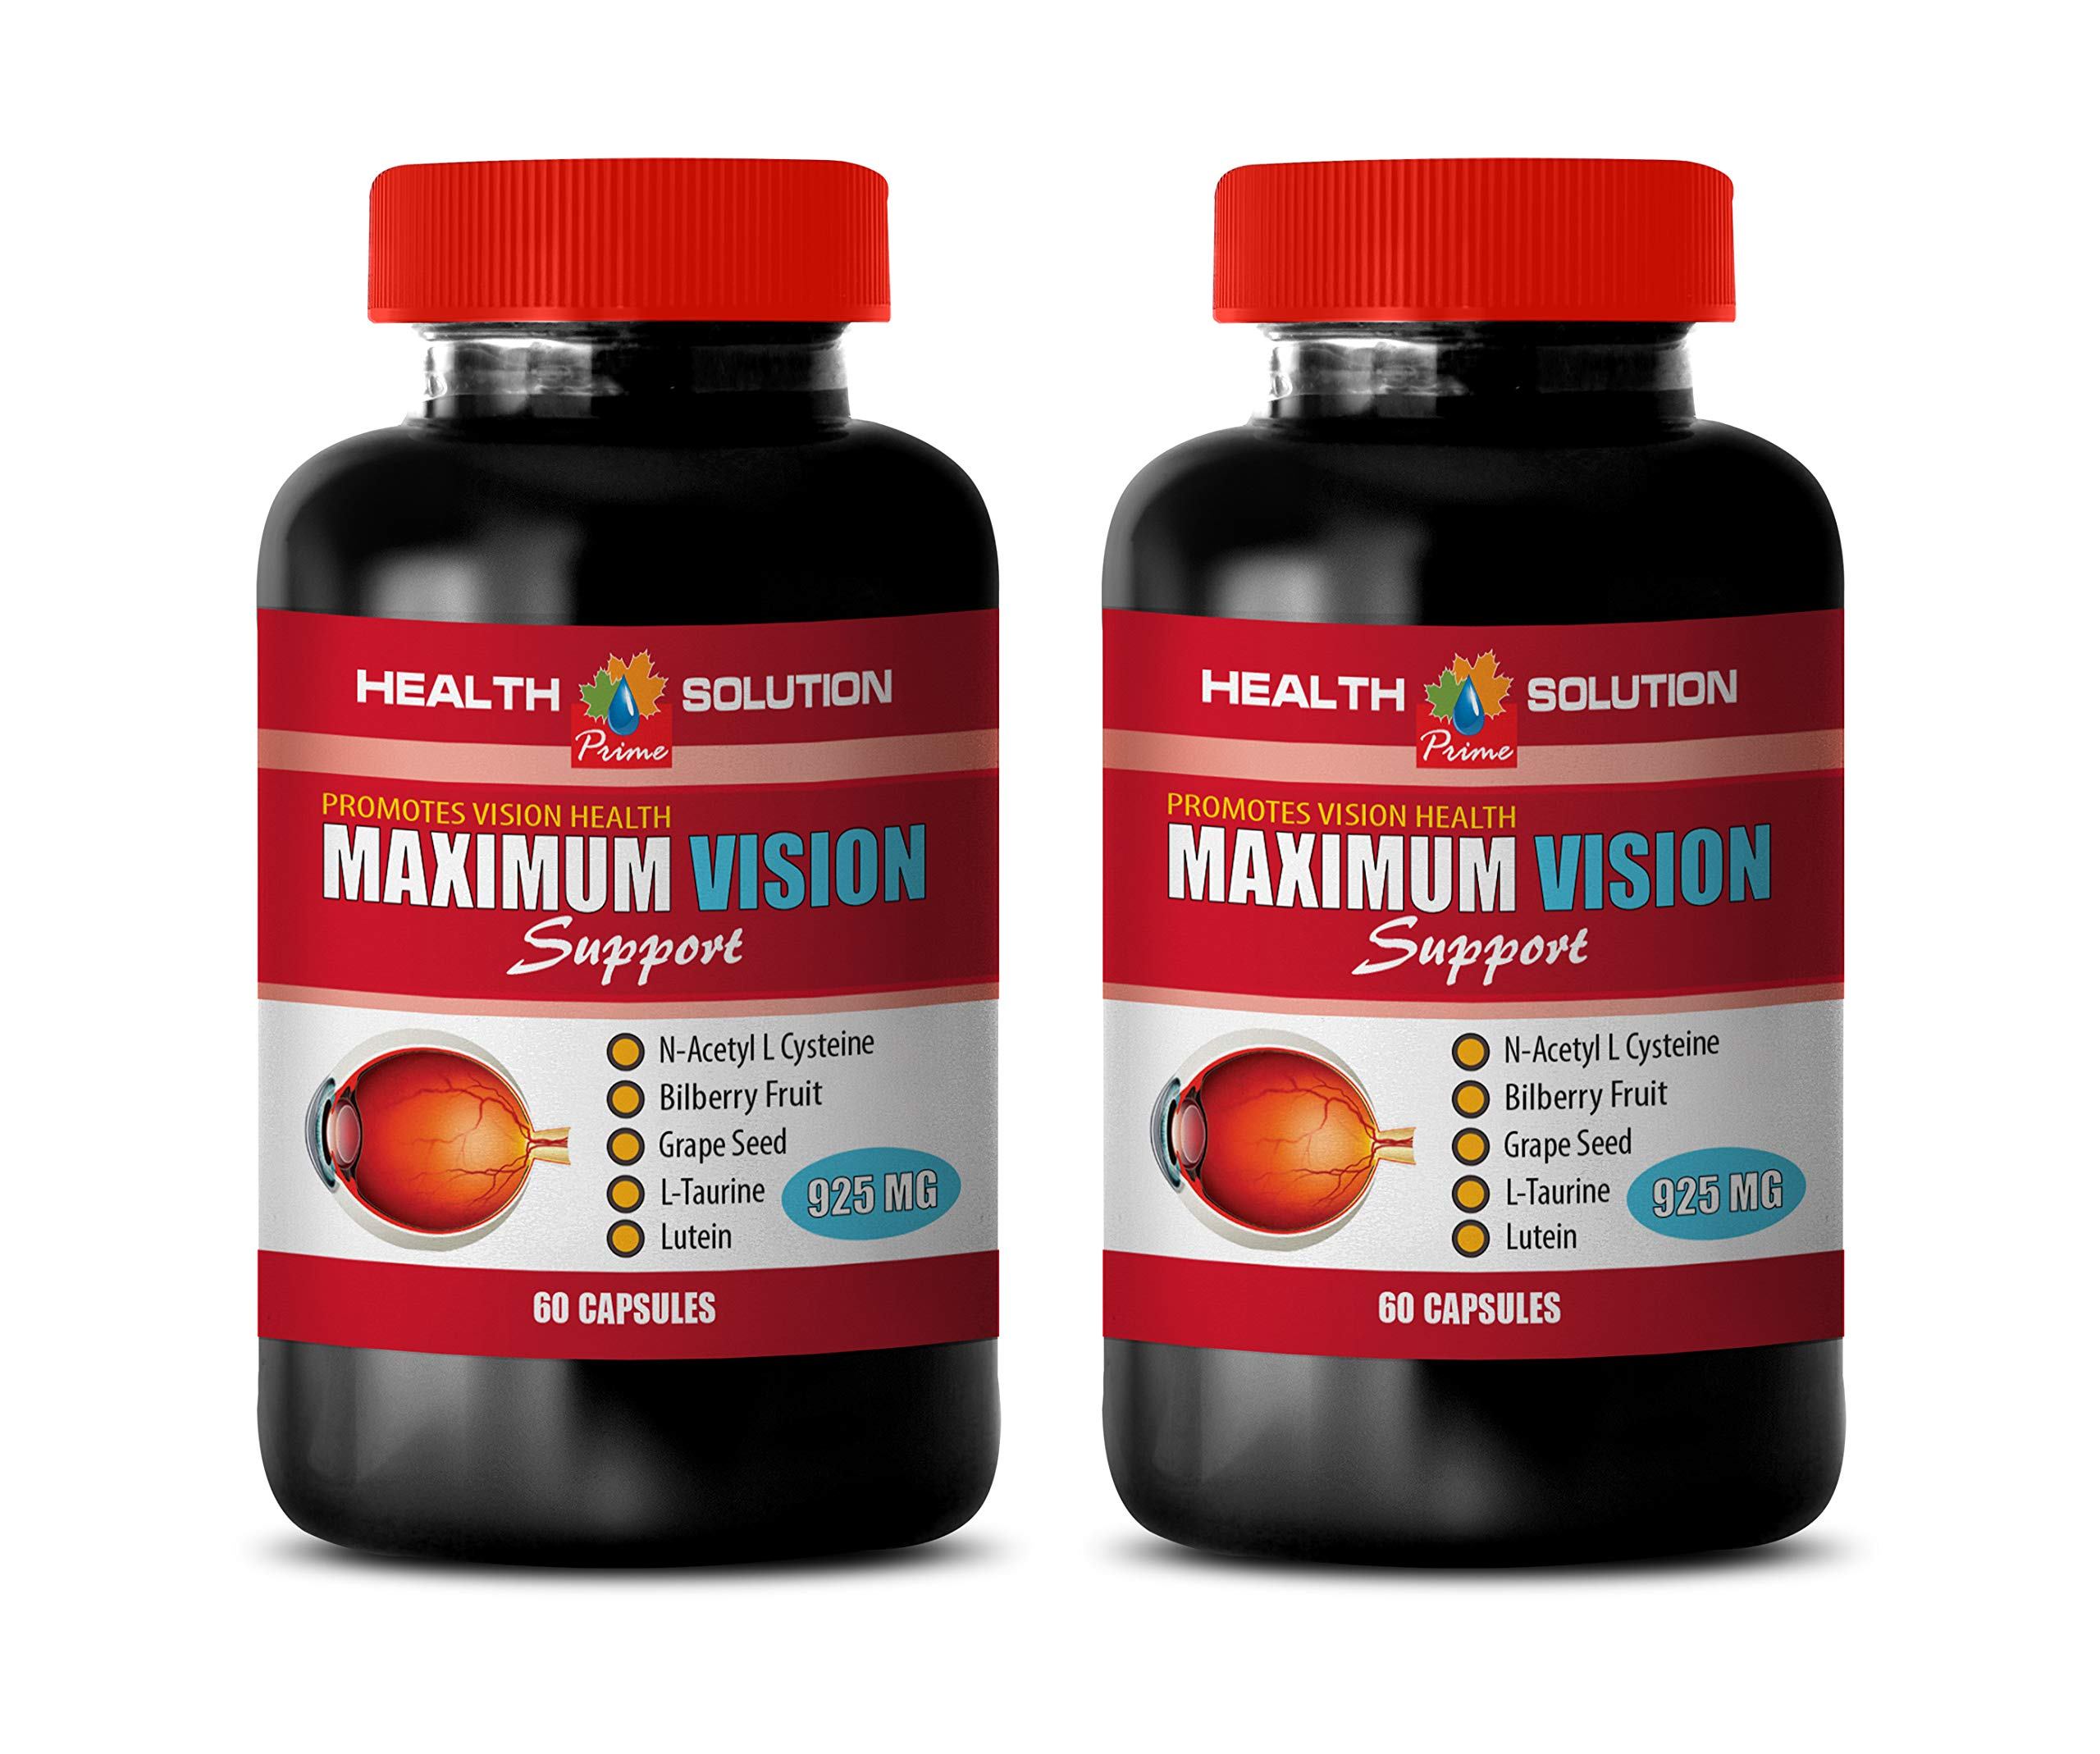 Vitamins for Eyes with Lutein and Bilberry - Maximum Vision Support - Promotes Vision Health - quercetin Complex - 2 Bottle 120 Capsules by Health Solution Prime